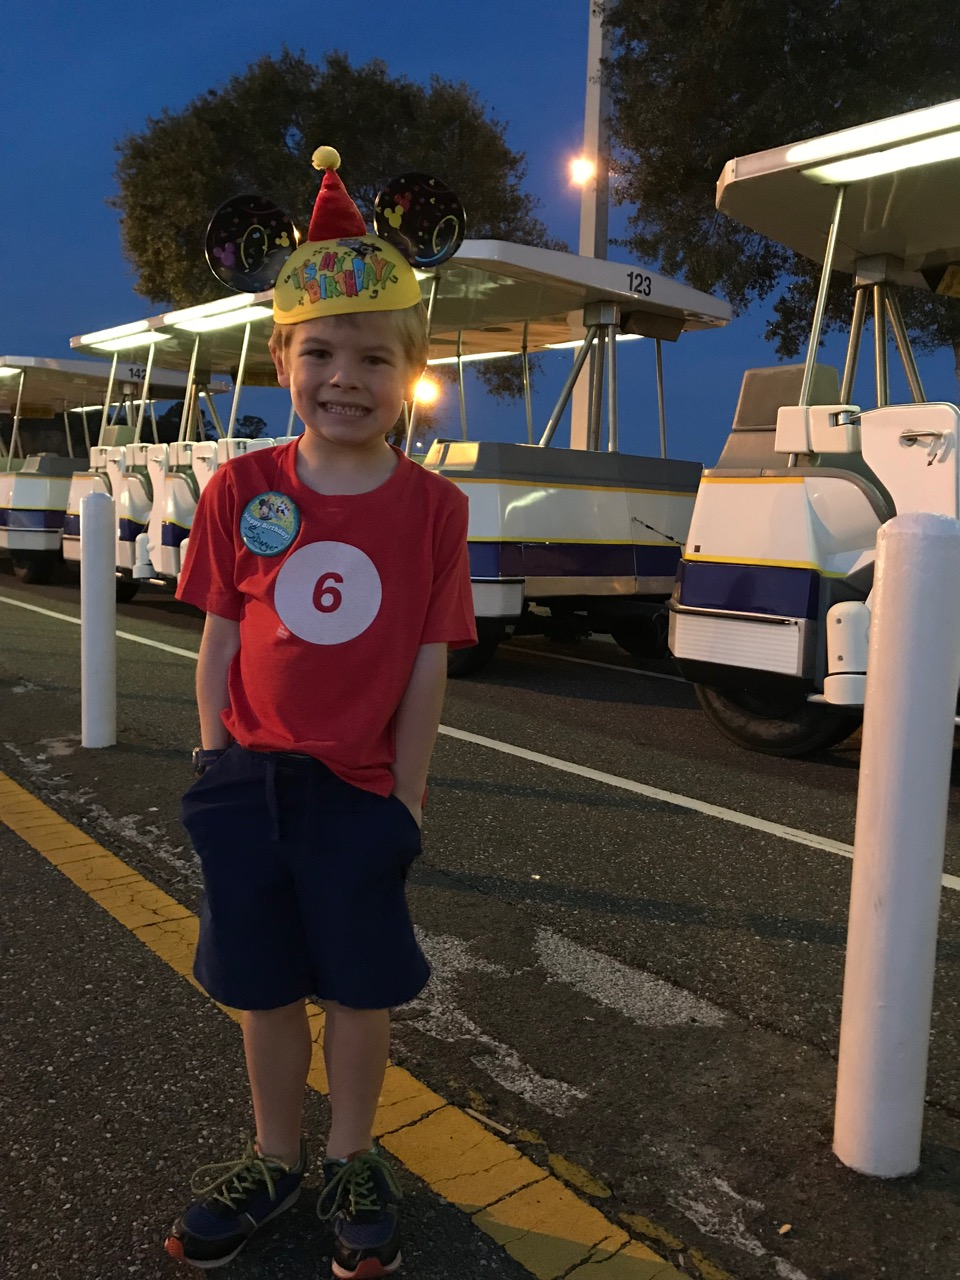 Sawyer's Sixth Birthday - Epcot